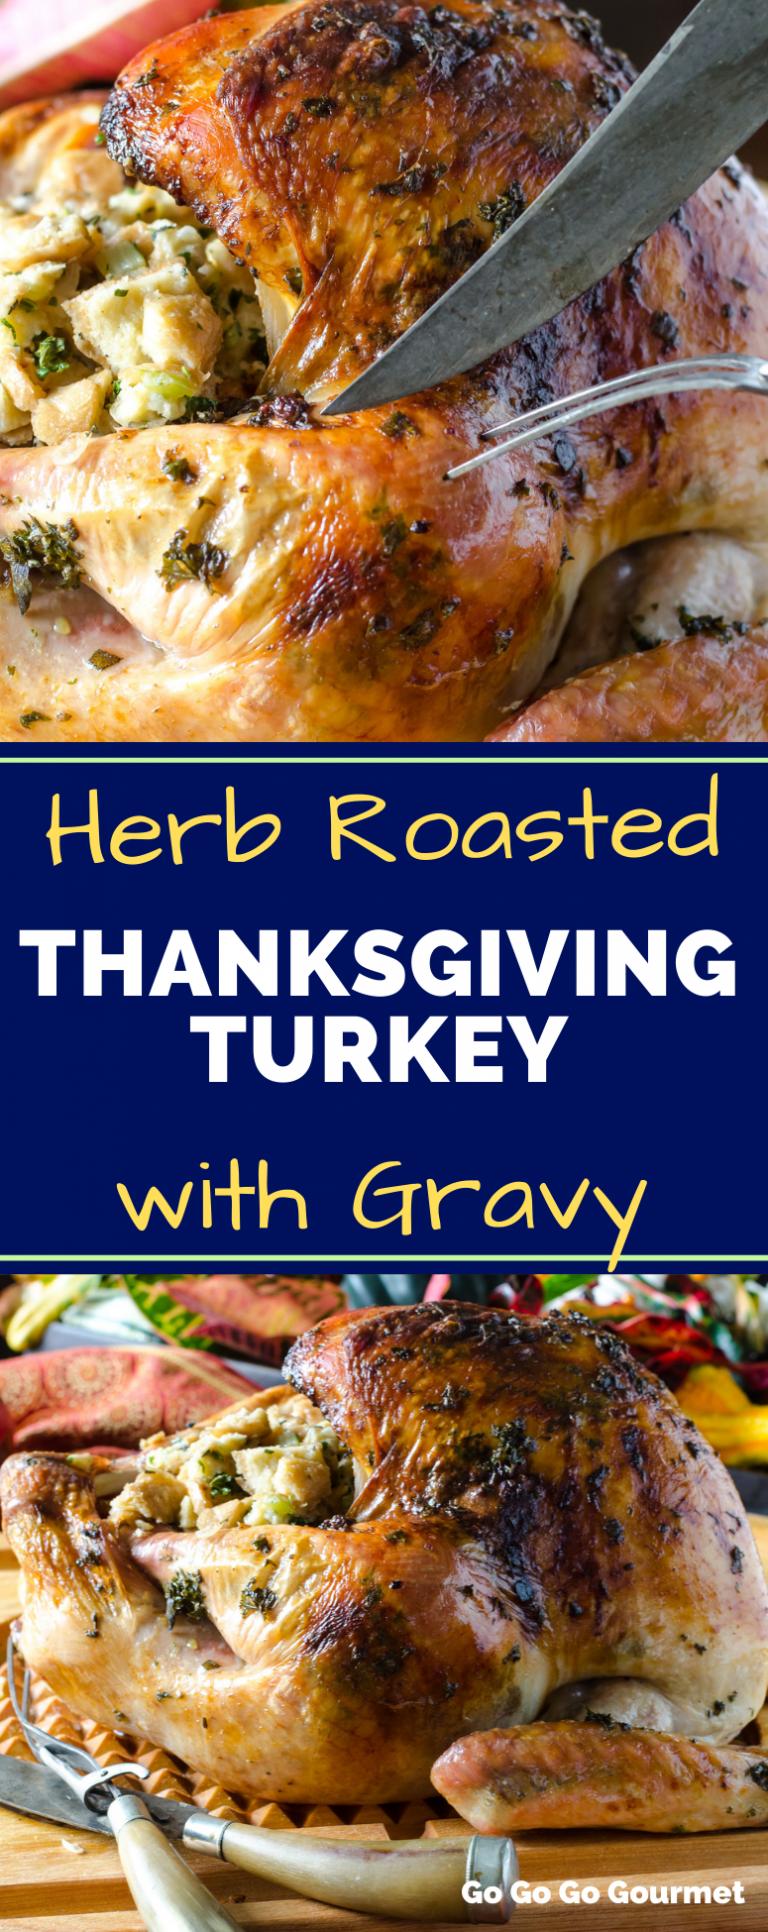 Move over Ina Garten, this easy Herb Roasted Turkey recipe is the best of the Thanksgiving turkey recipes! Made with fresh herbs and a brine, this turkey is moist, juicy and super flavorful! #gogogogourmet #herbroastedturkey #thanksgivingturkey #easyturkeyrecipe via @gogogogourmet